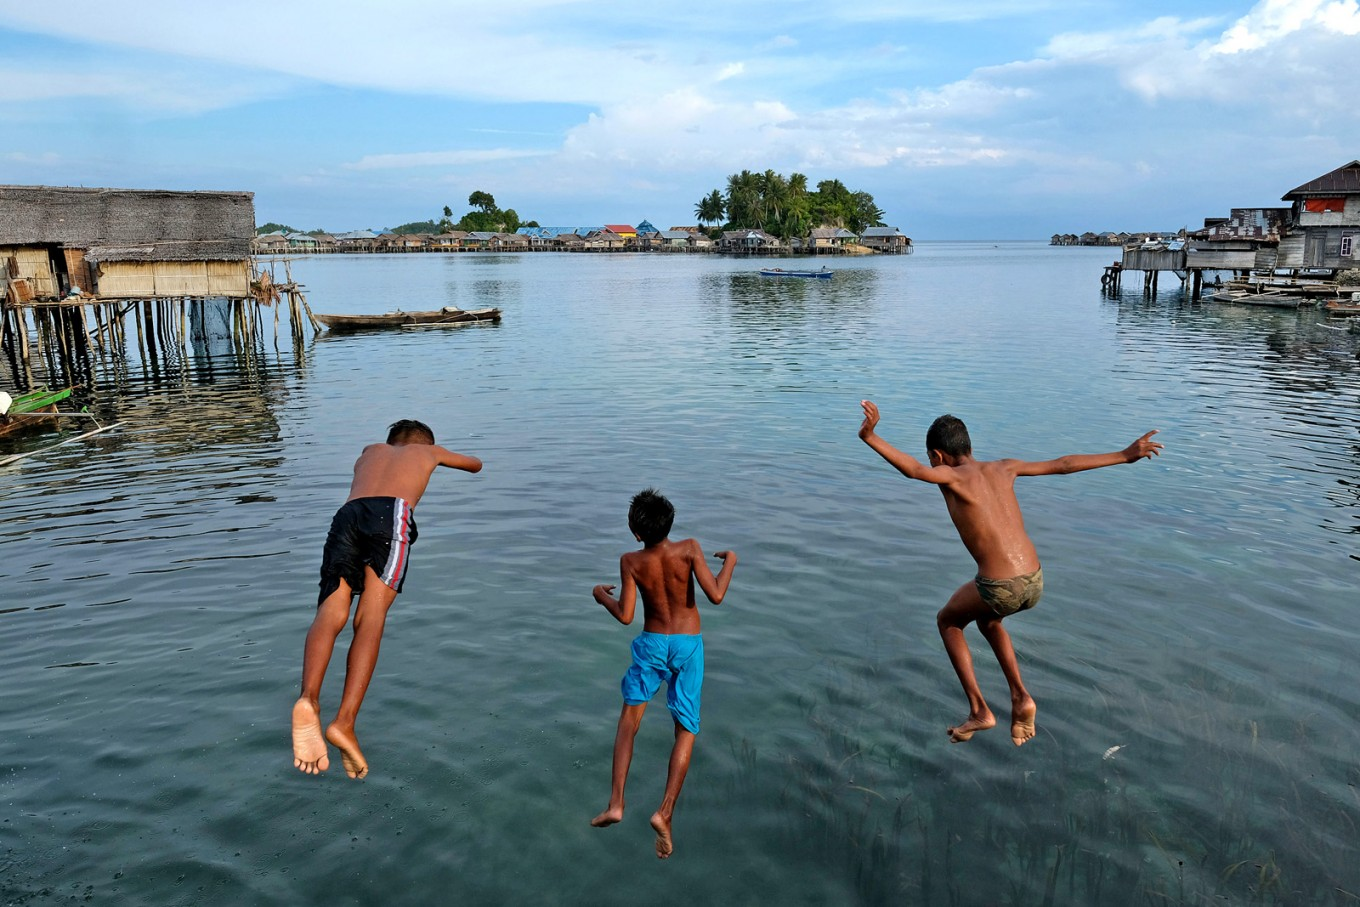 Children of the Bajo tribe play in Kabalutan village on Togean Islands in Tojo Una Una regency, Central Sulawesi.